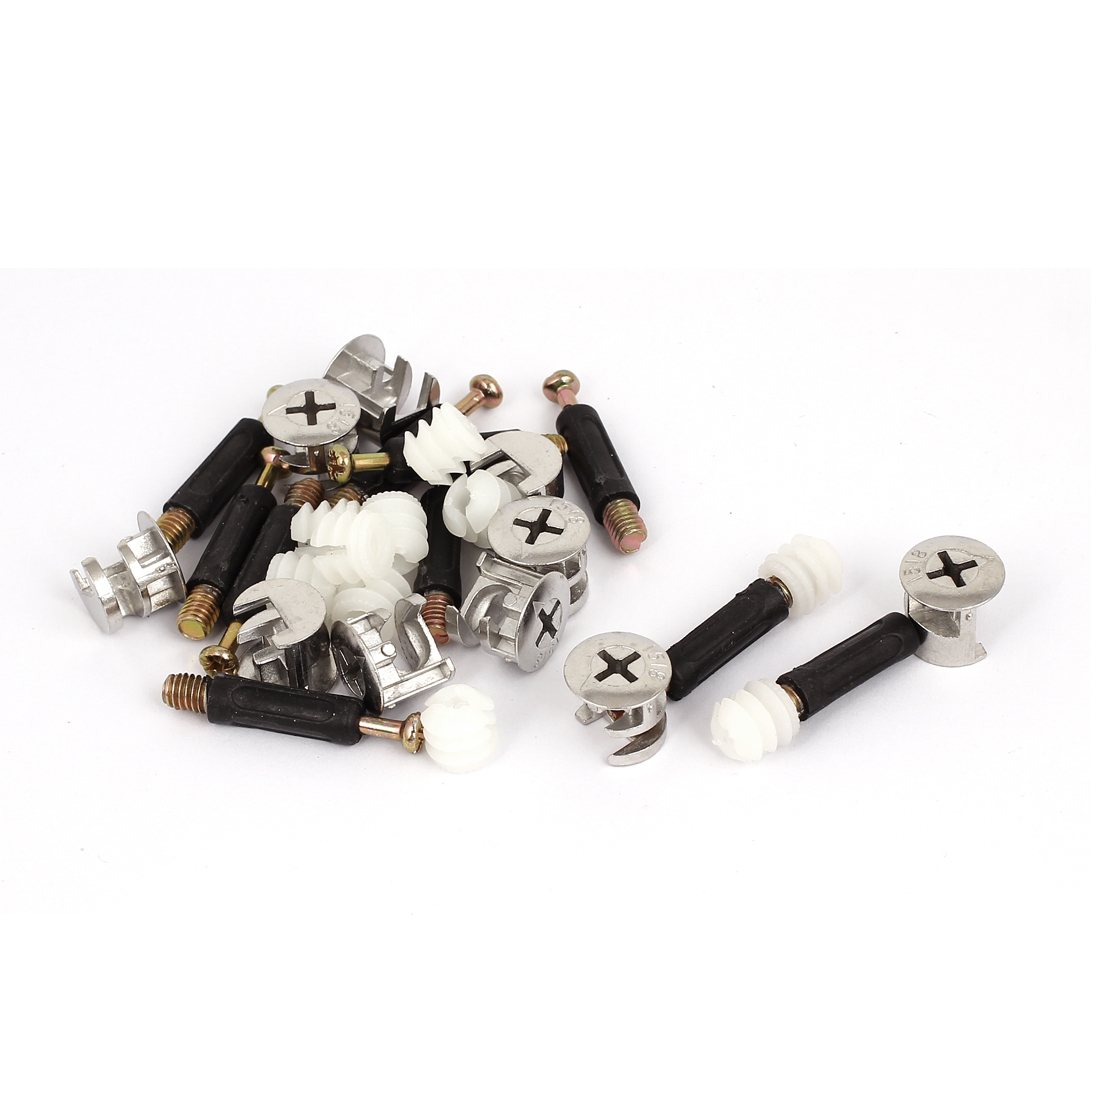 Unique Bargains 10 Sets Furniture Connector 15mm Cam Fittings + Pre-inserted Nuts + Dowels